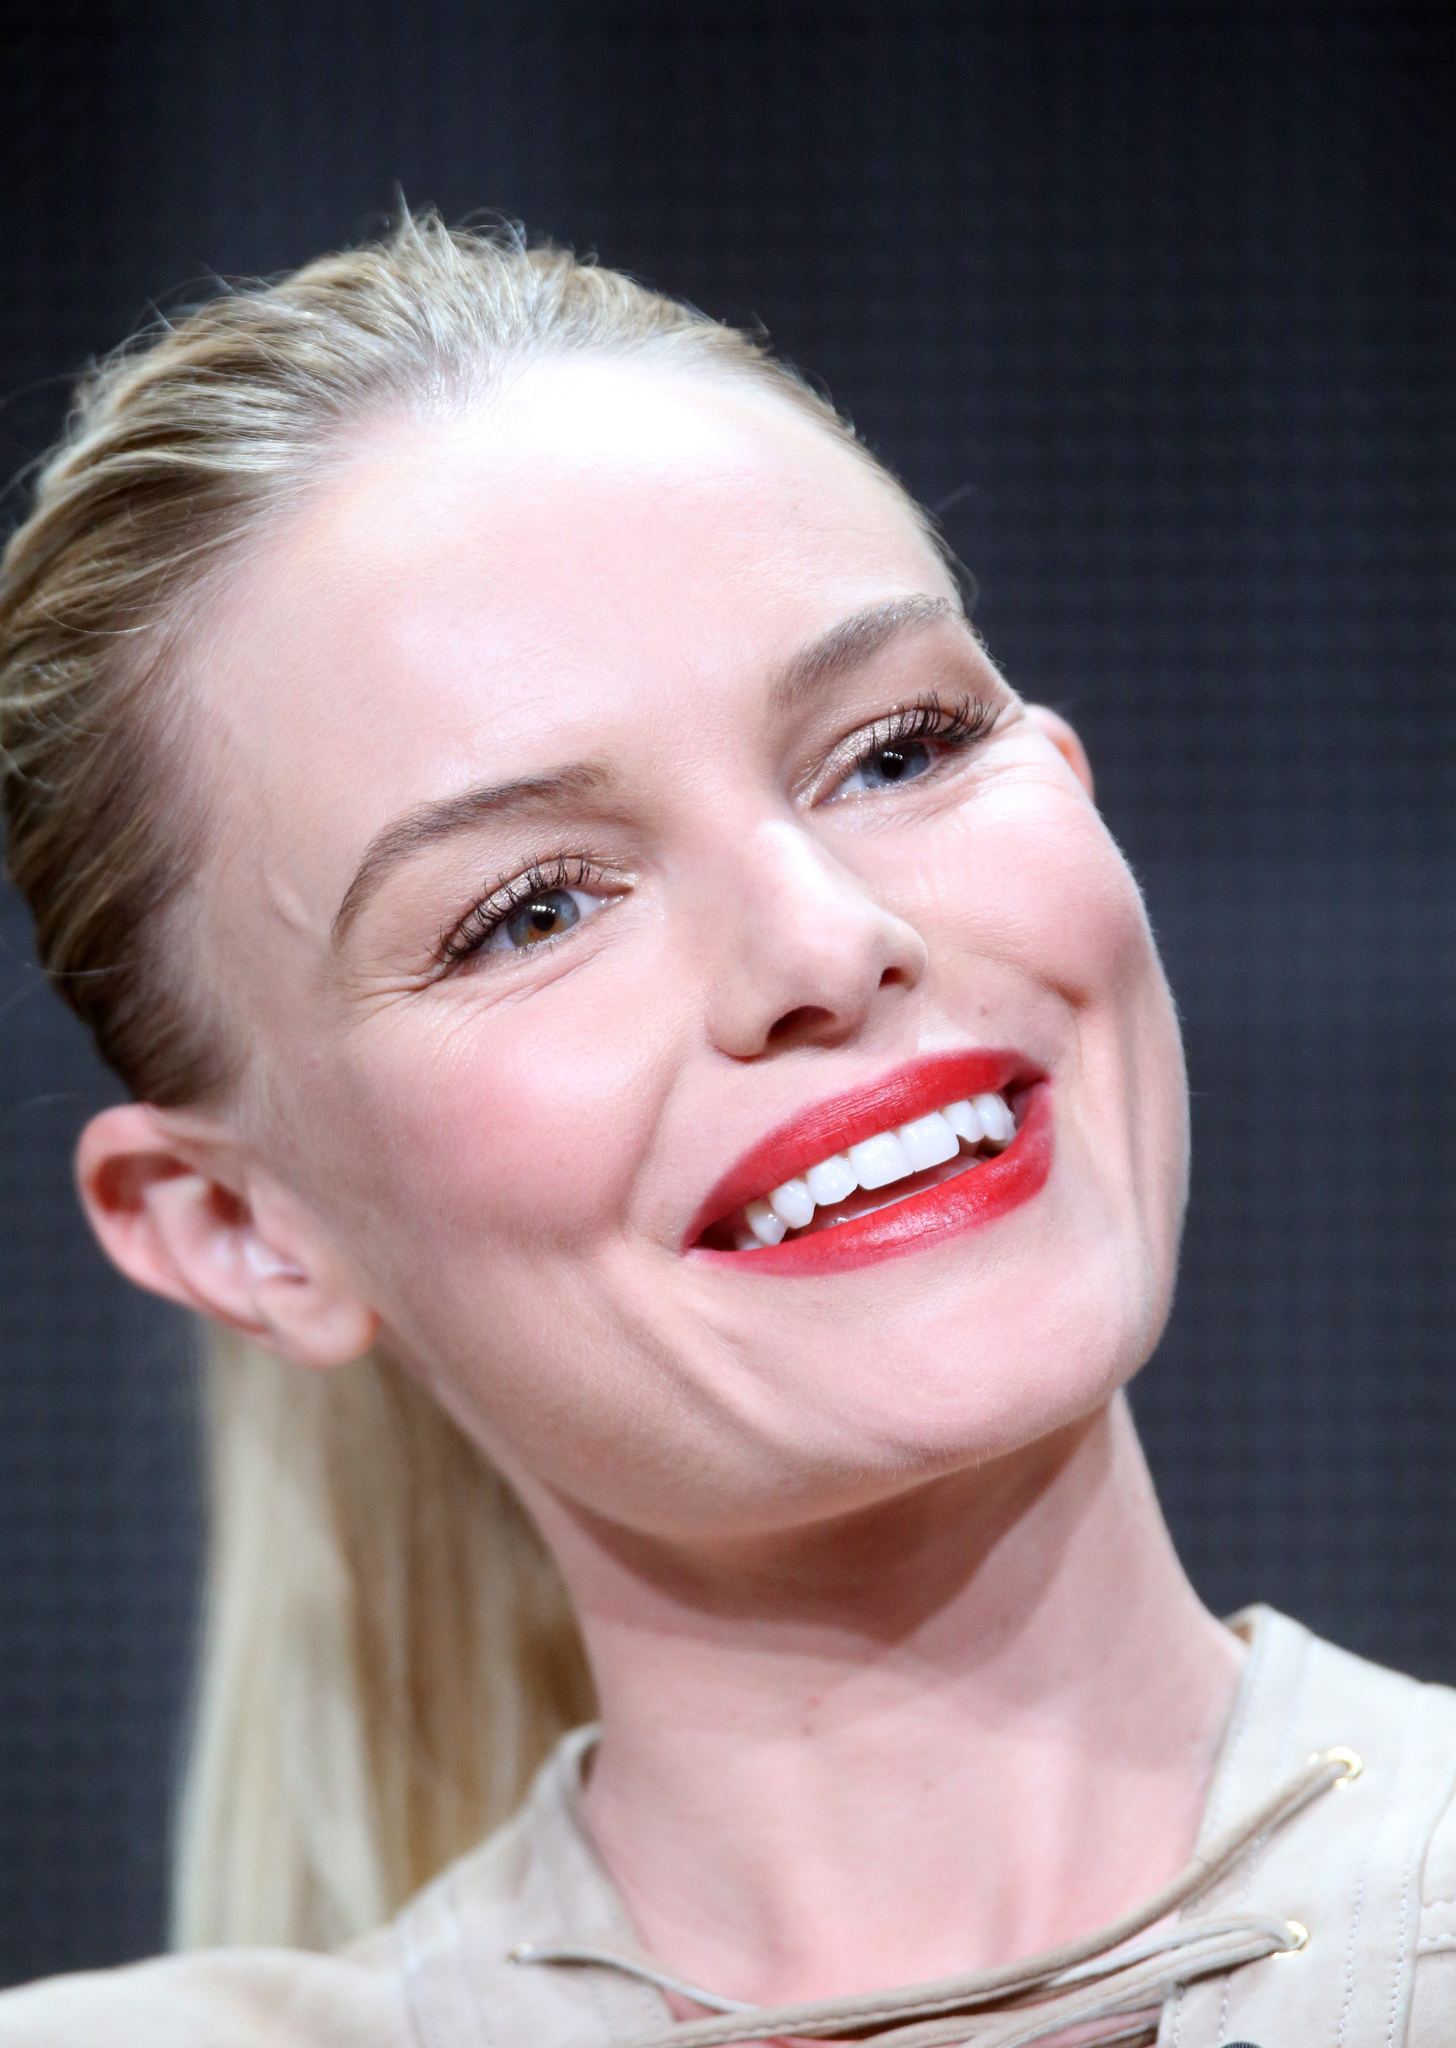 Kate Bosworth at an event for The Art of More (2015)